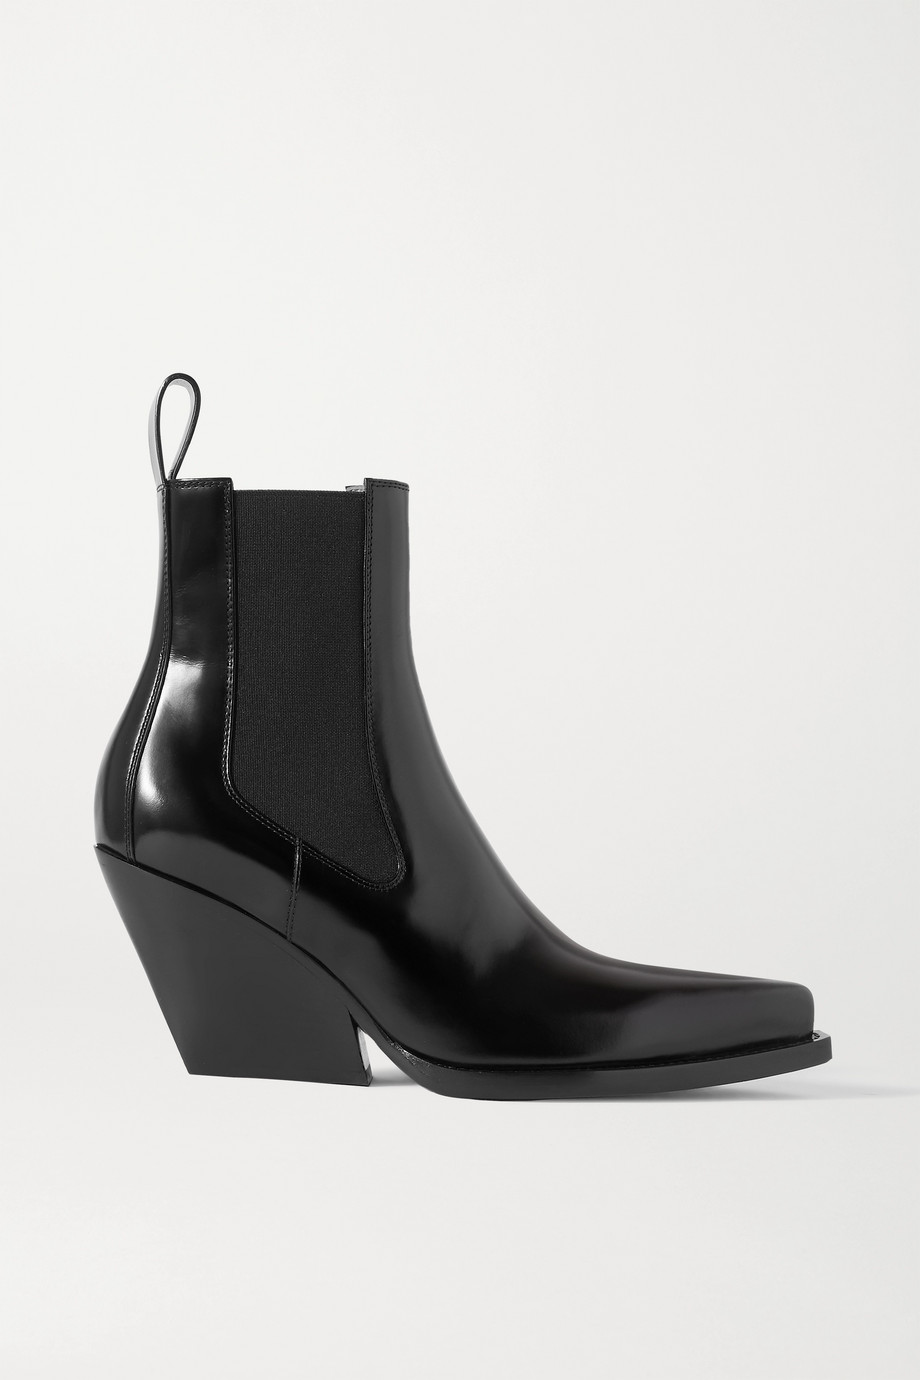 BOTTEGA VENETA Glossed-leather ankle boots